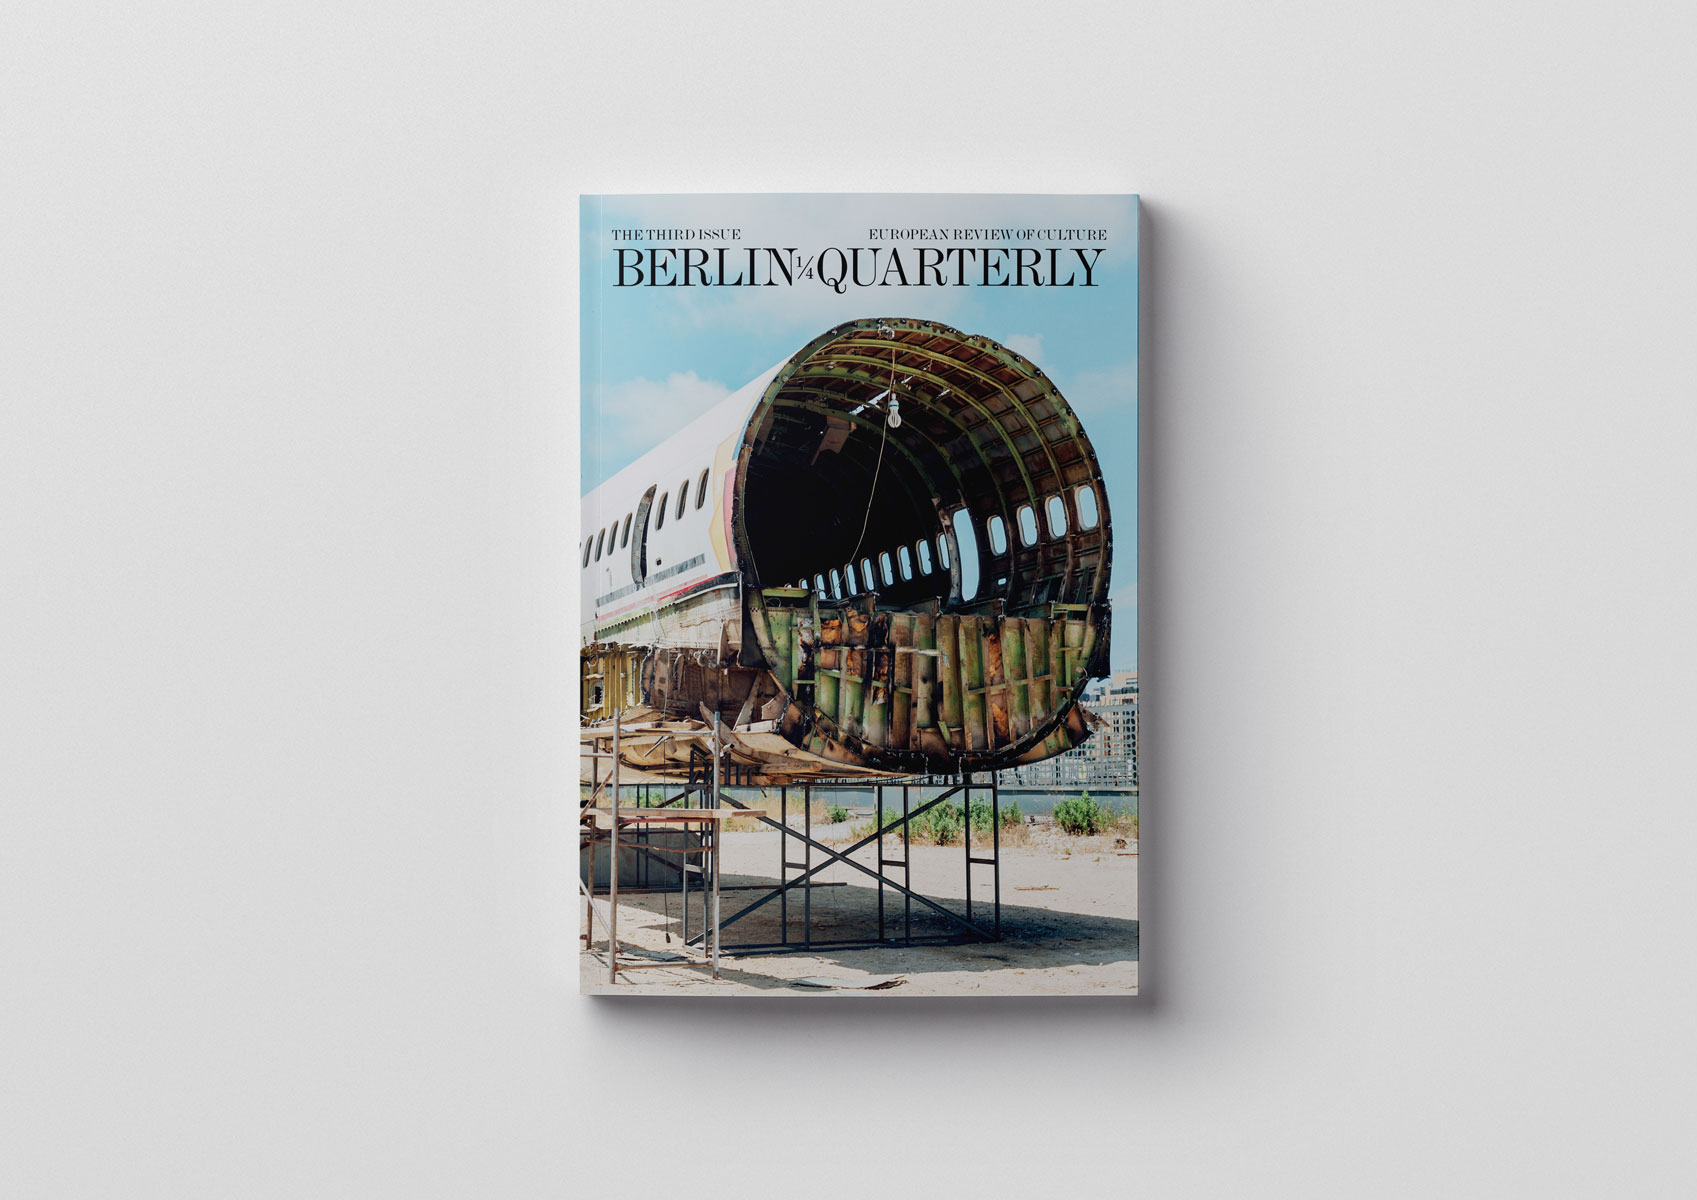 nicoletta-dalfino-berlin-quarterly-3-cover